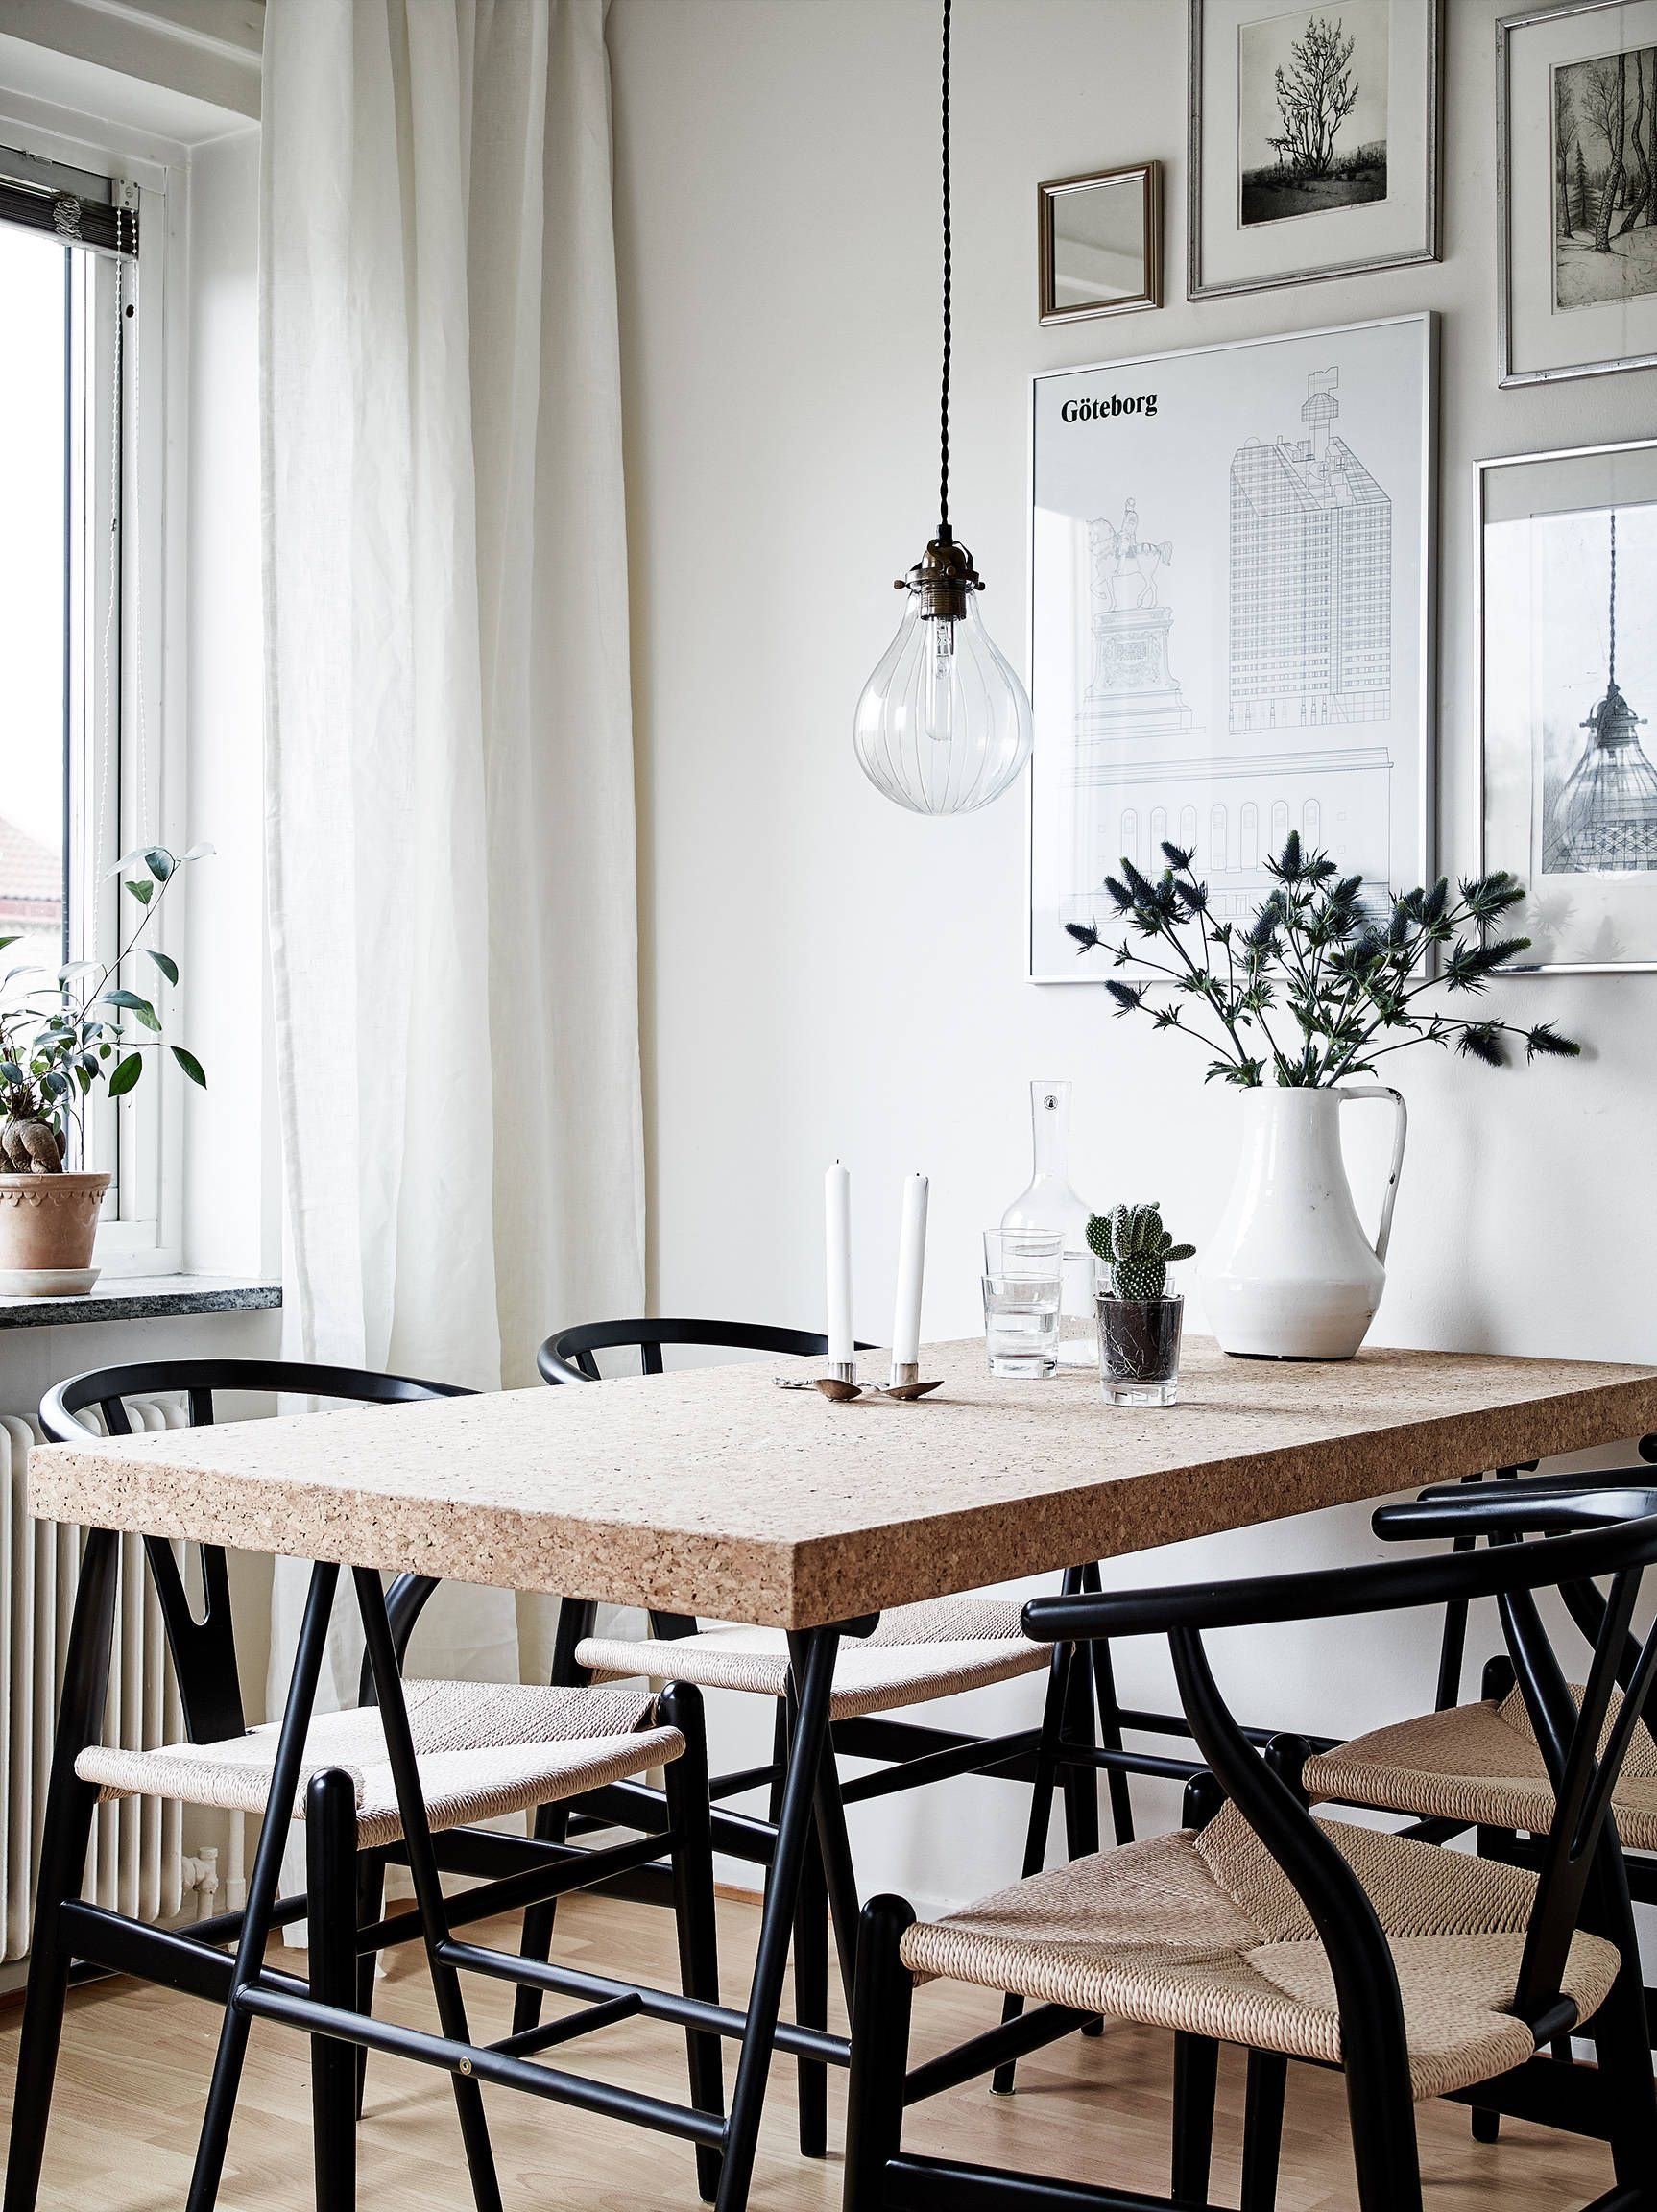 black wishbone chairs and a cork table in the kitchen | live